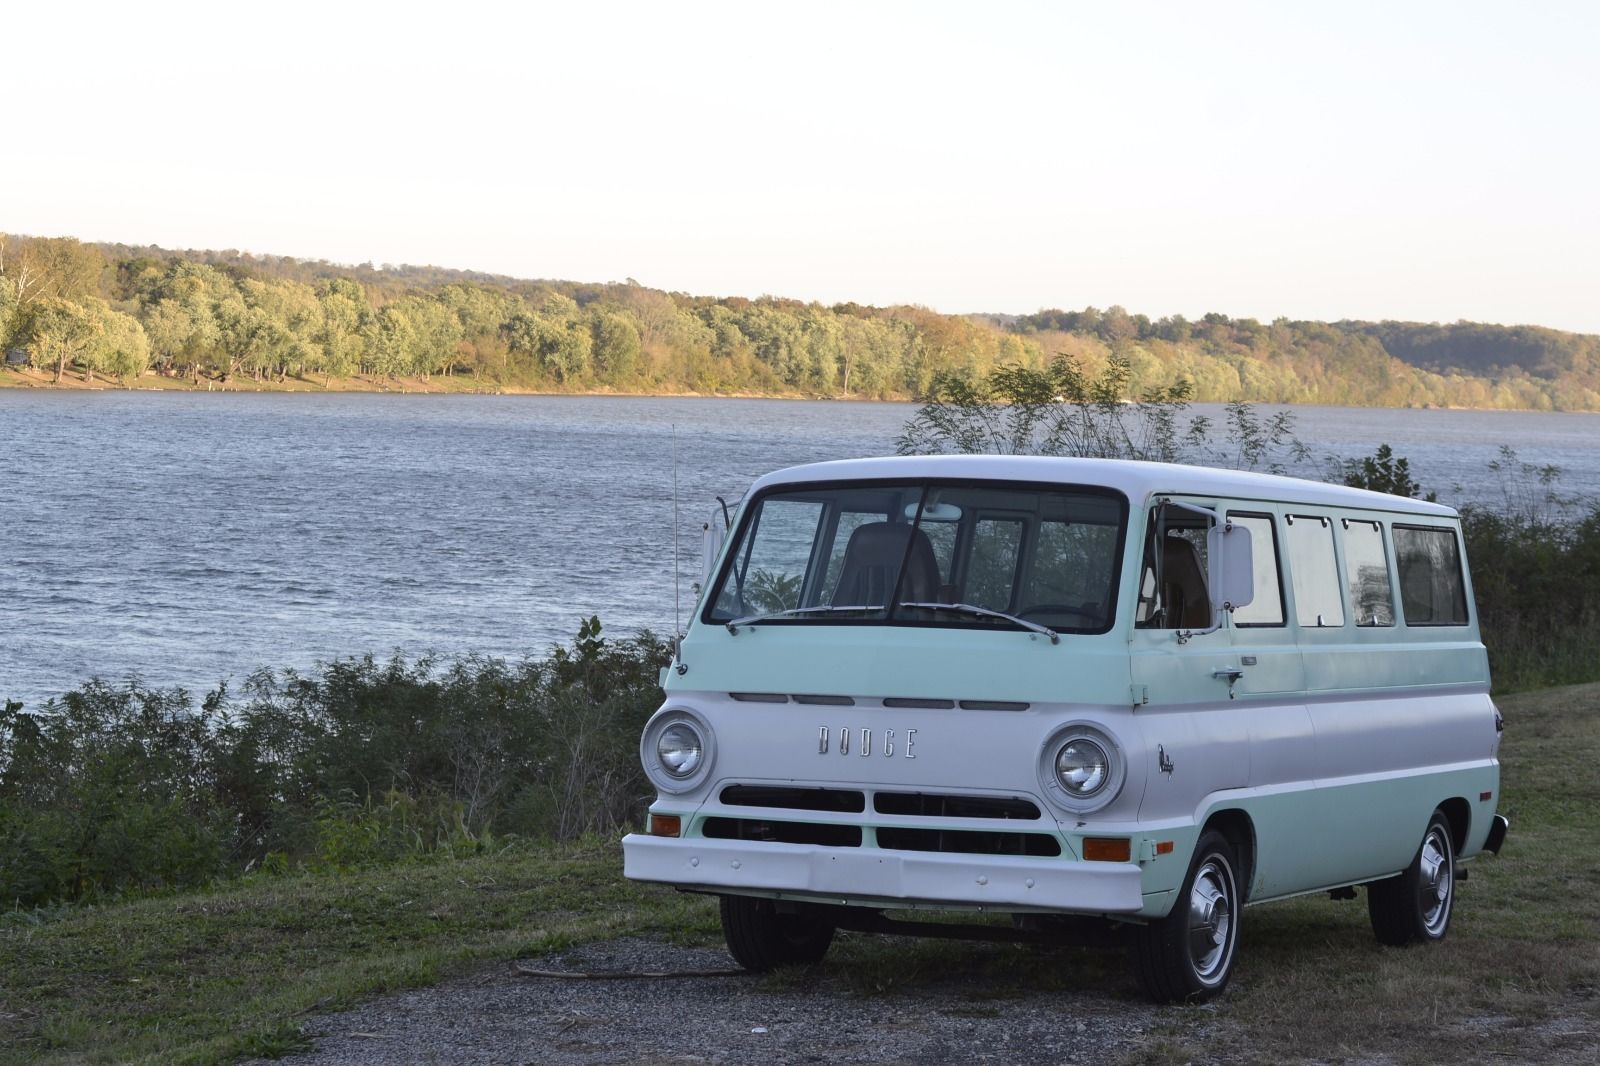 1970 Dodge A108 Sportsman Camper Van For Sale in ...